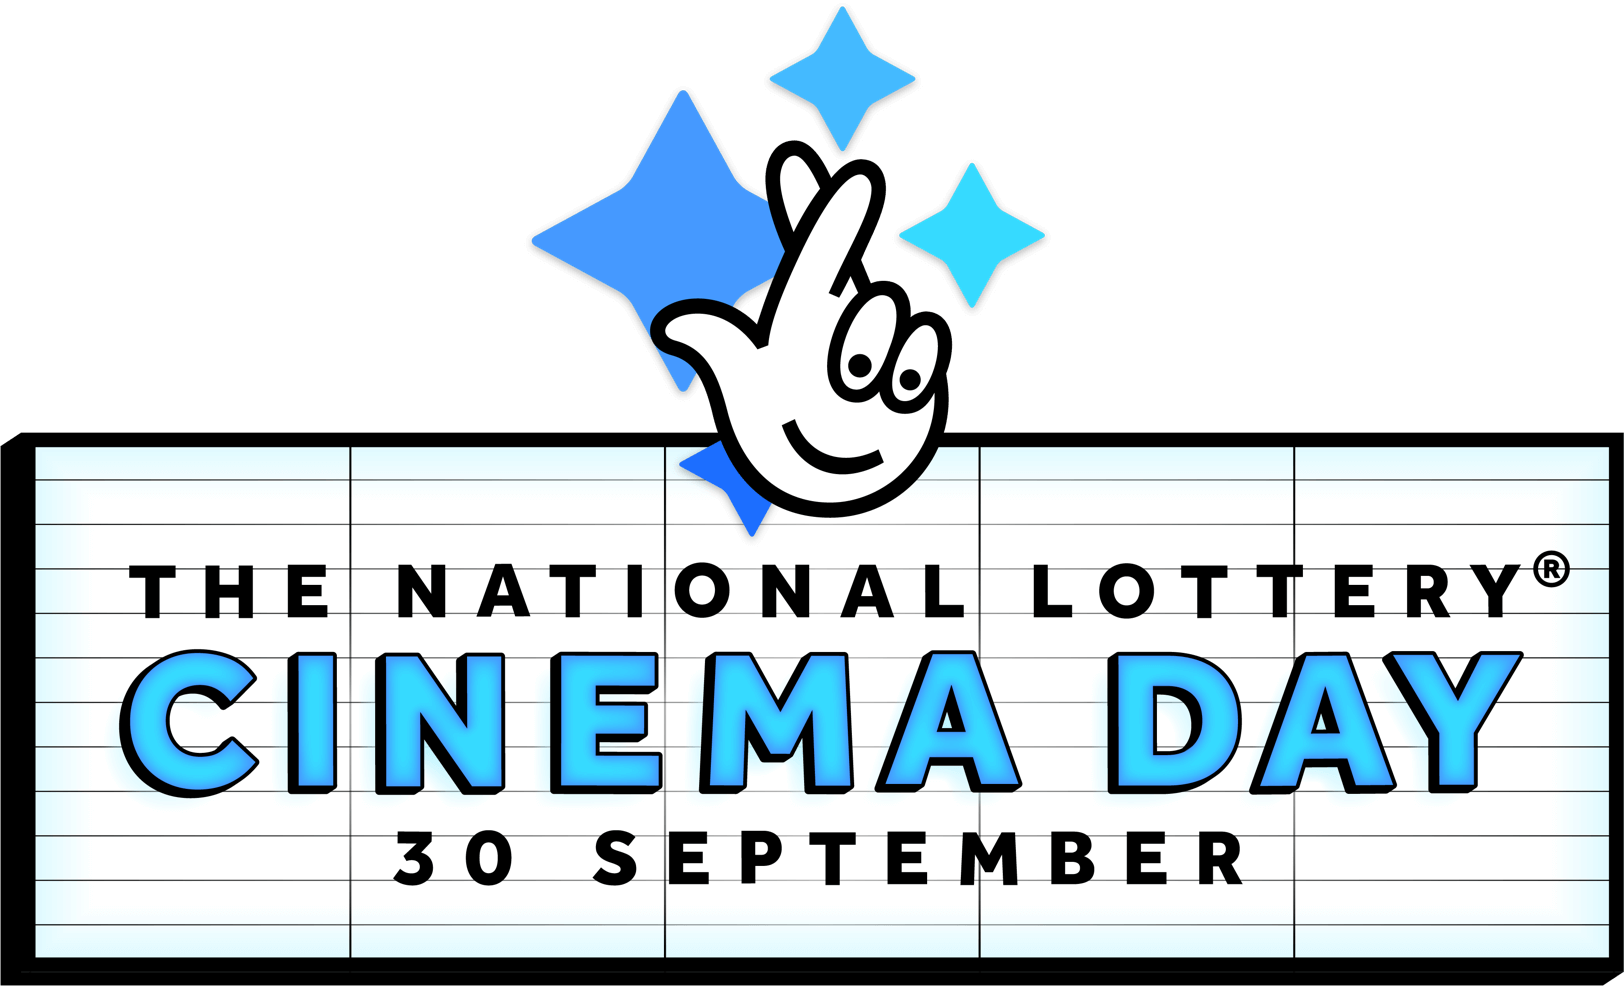 The National Lottery Cinema Day